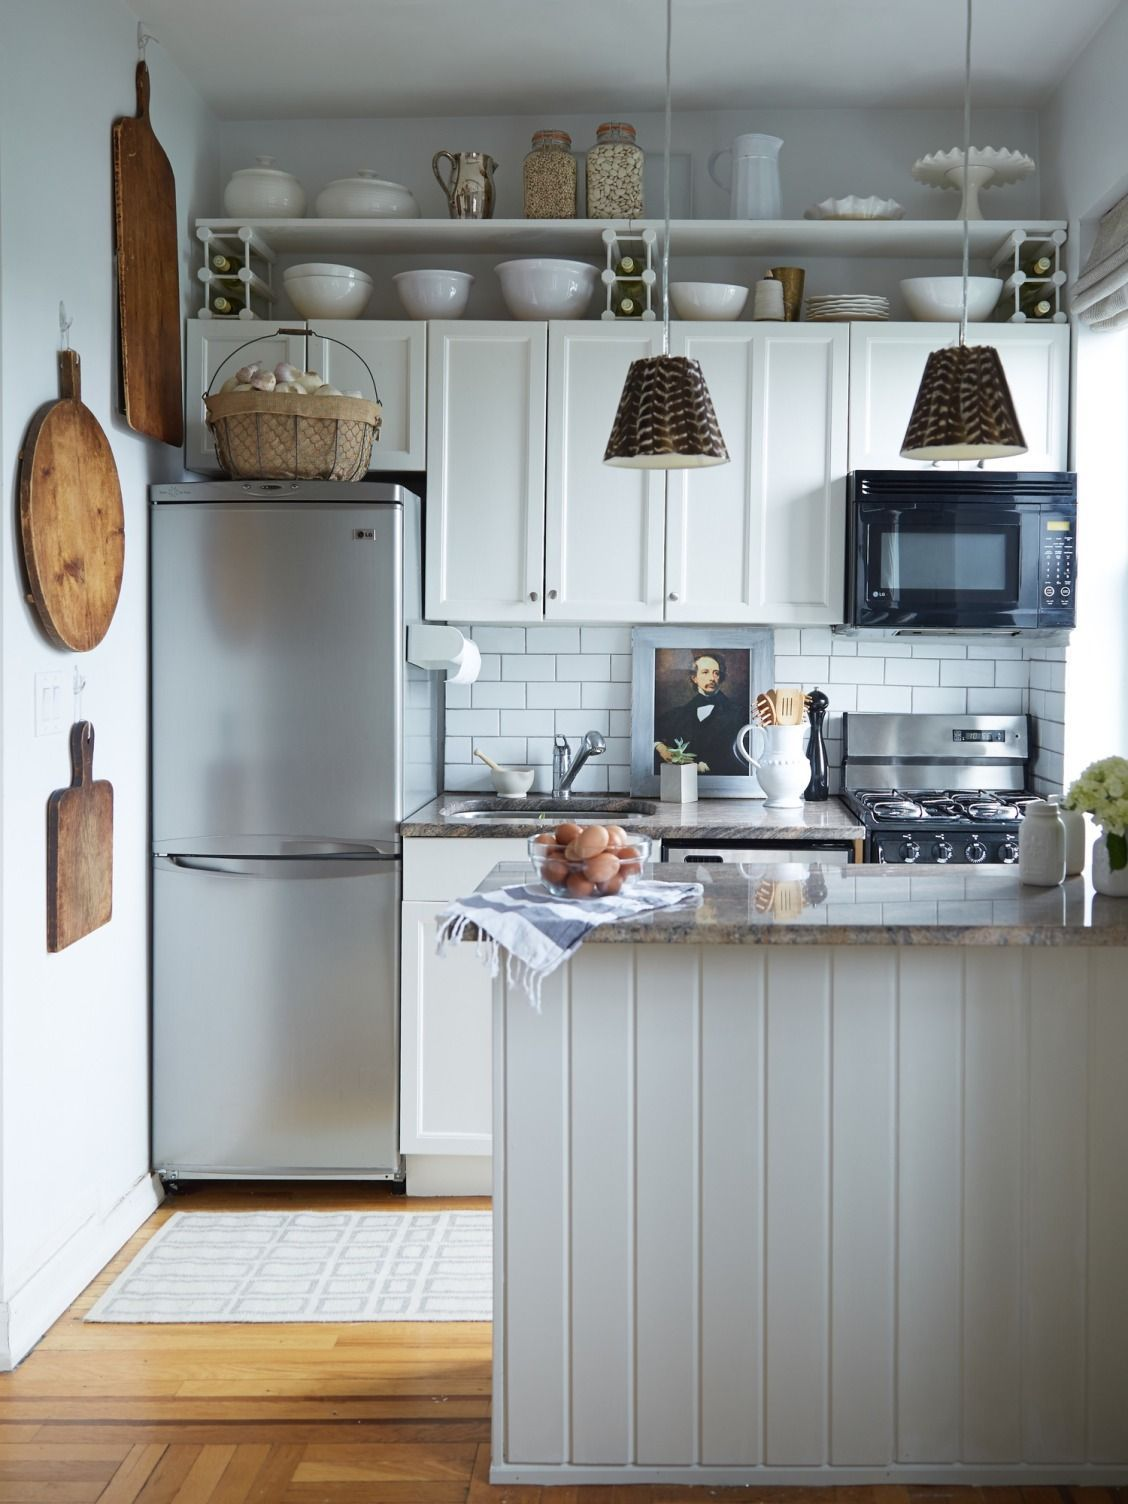 Horstmann Küchen 9 Perfect Places To Squeeze In Some Extra Shelves | Small Space Kitchen, Kitchen Design Small, Tiny House Kitchen